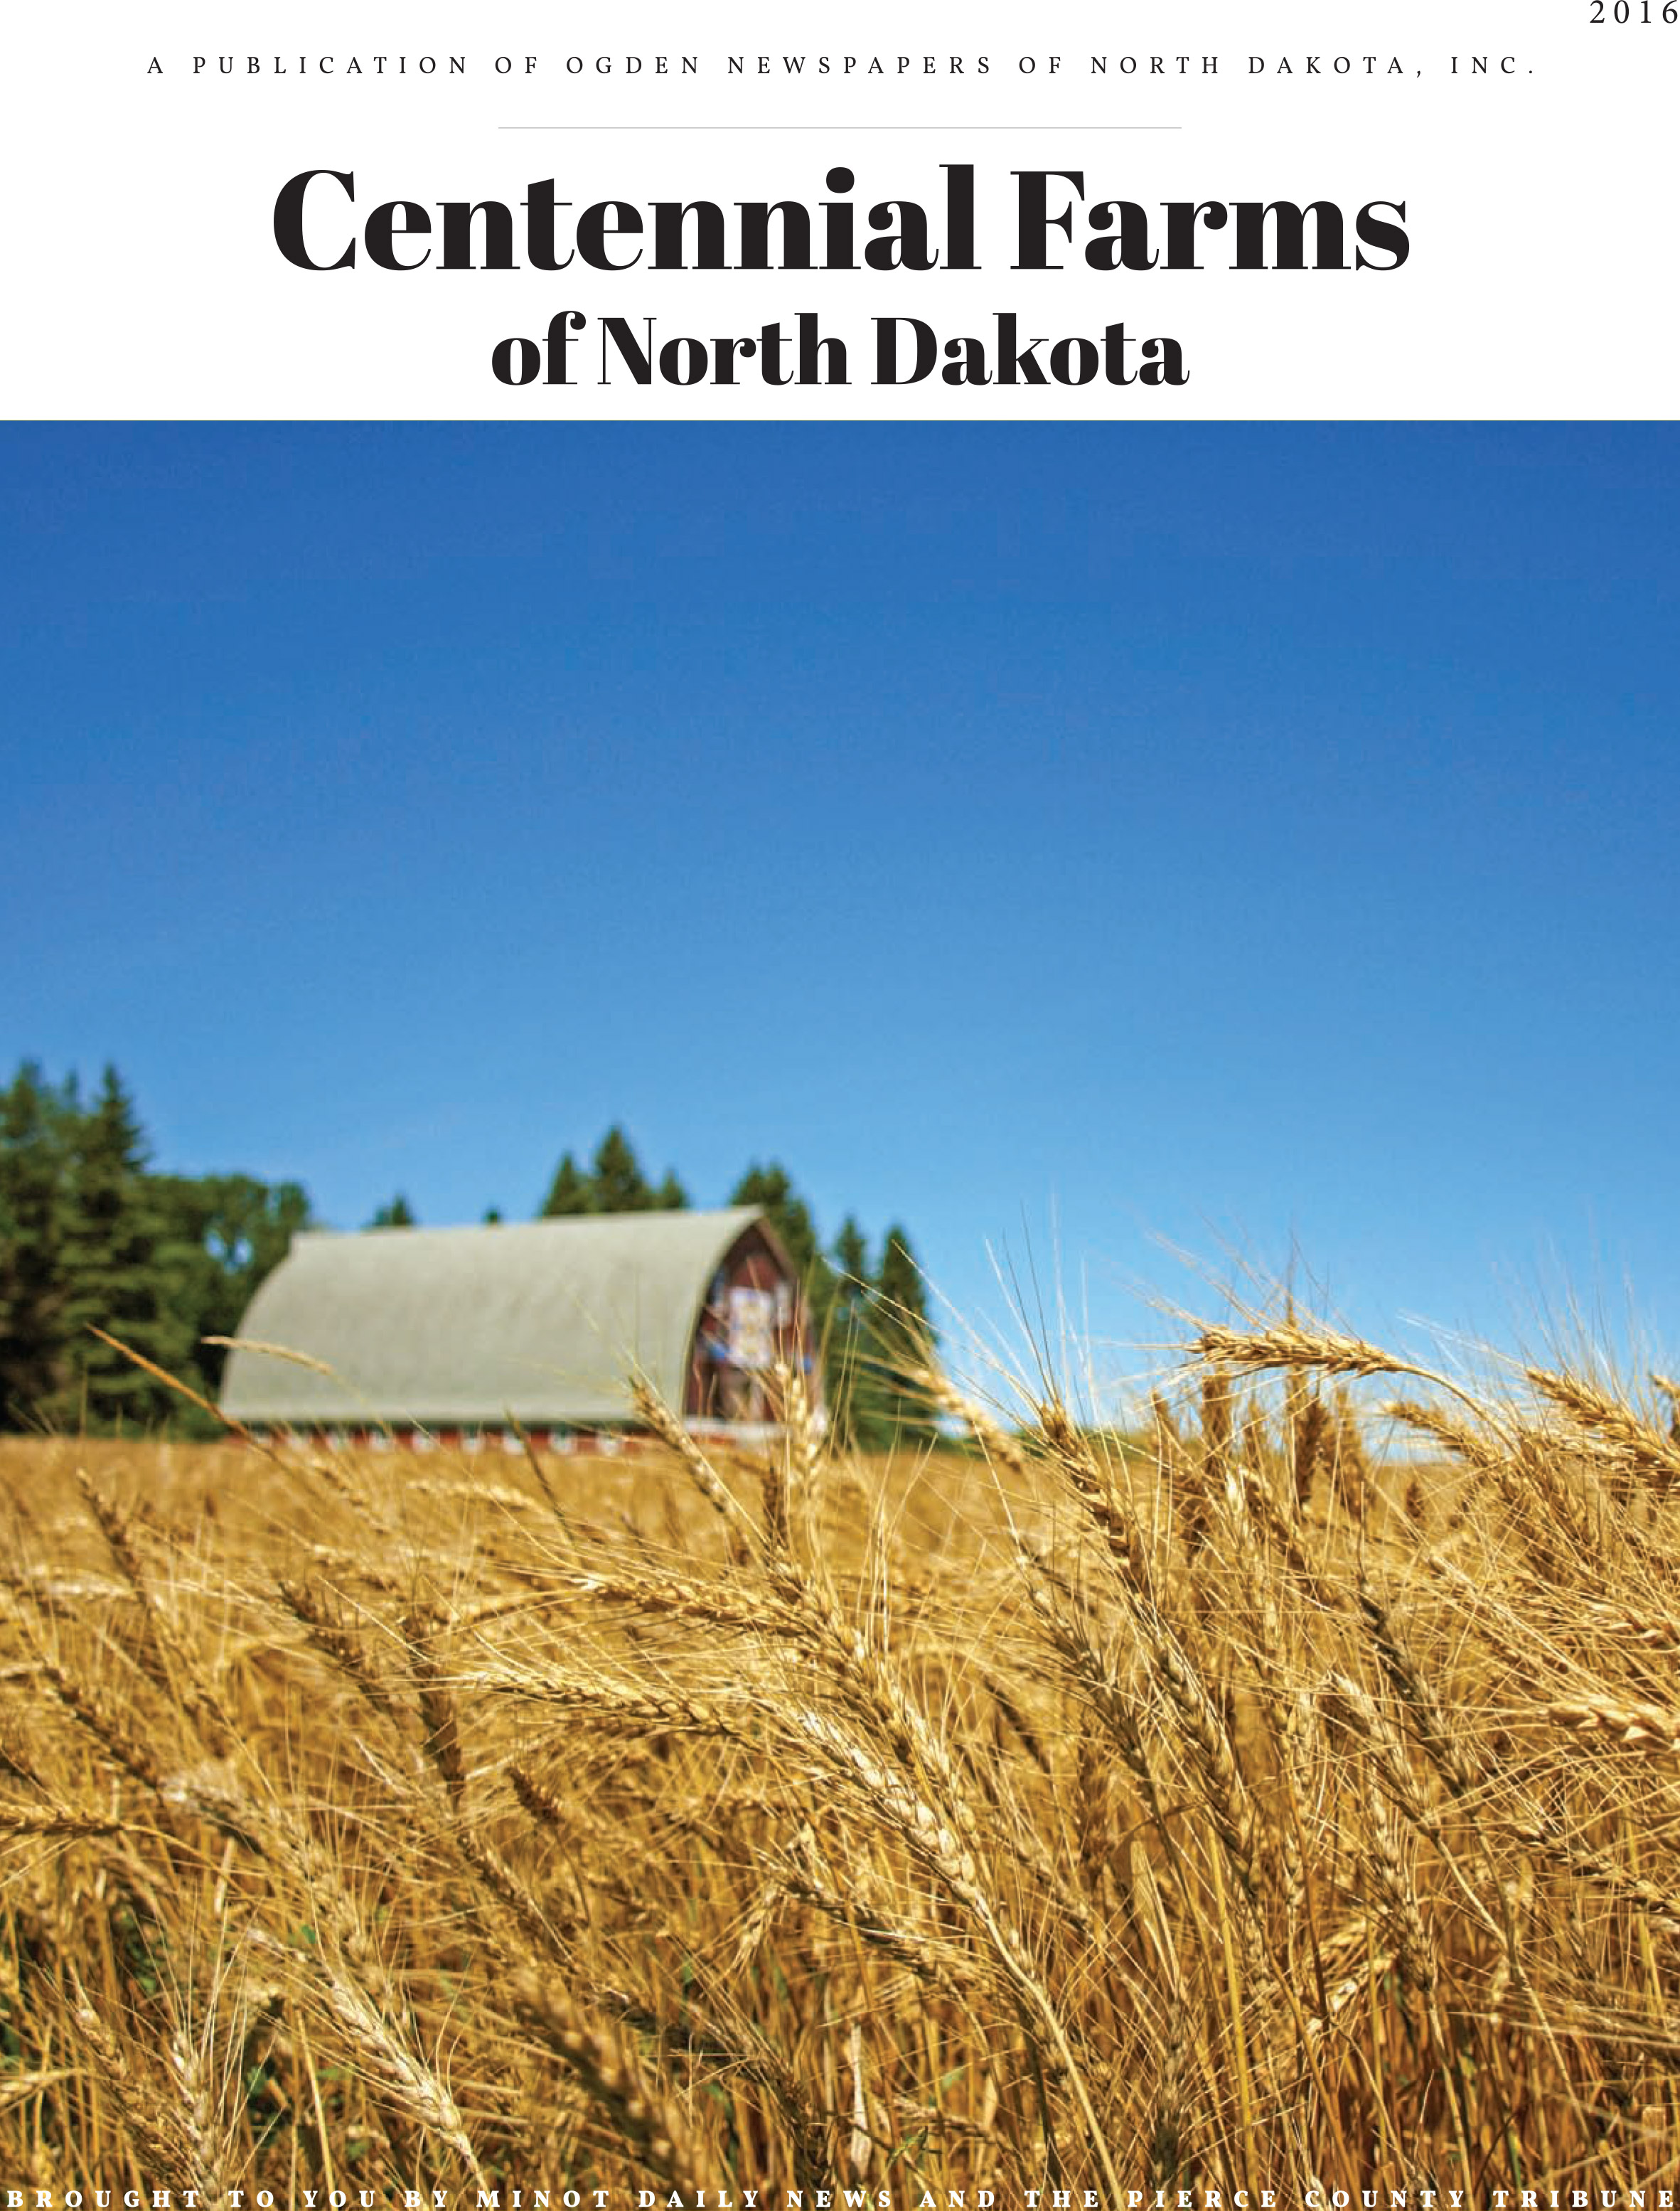 The Latest North Dakota News from Bakken.com